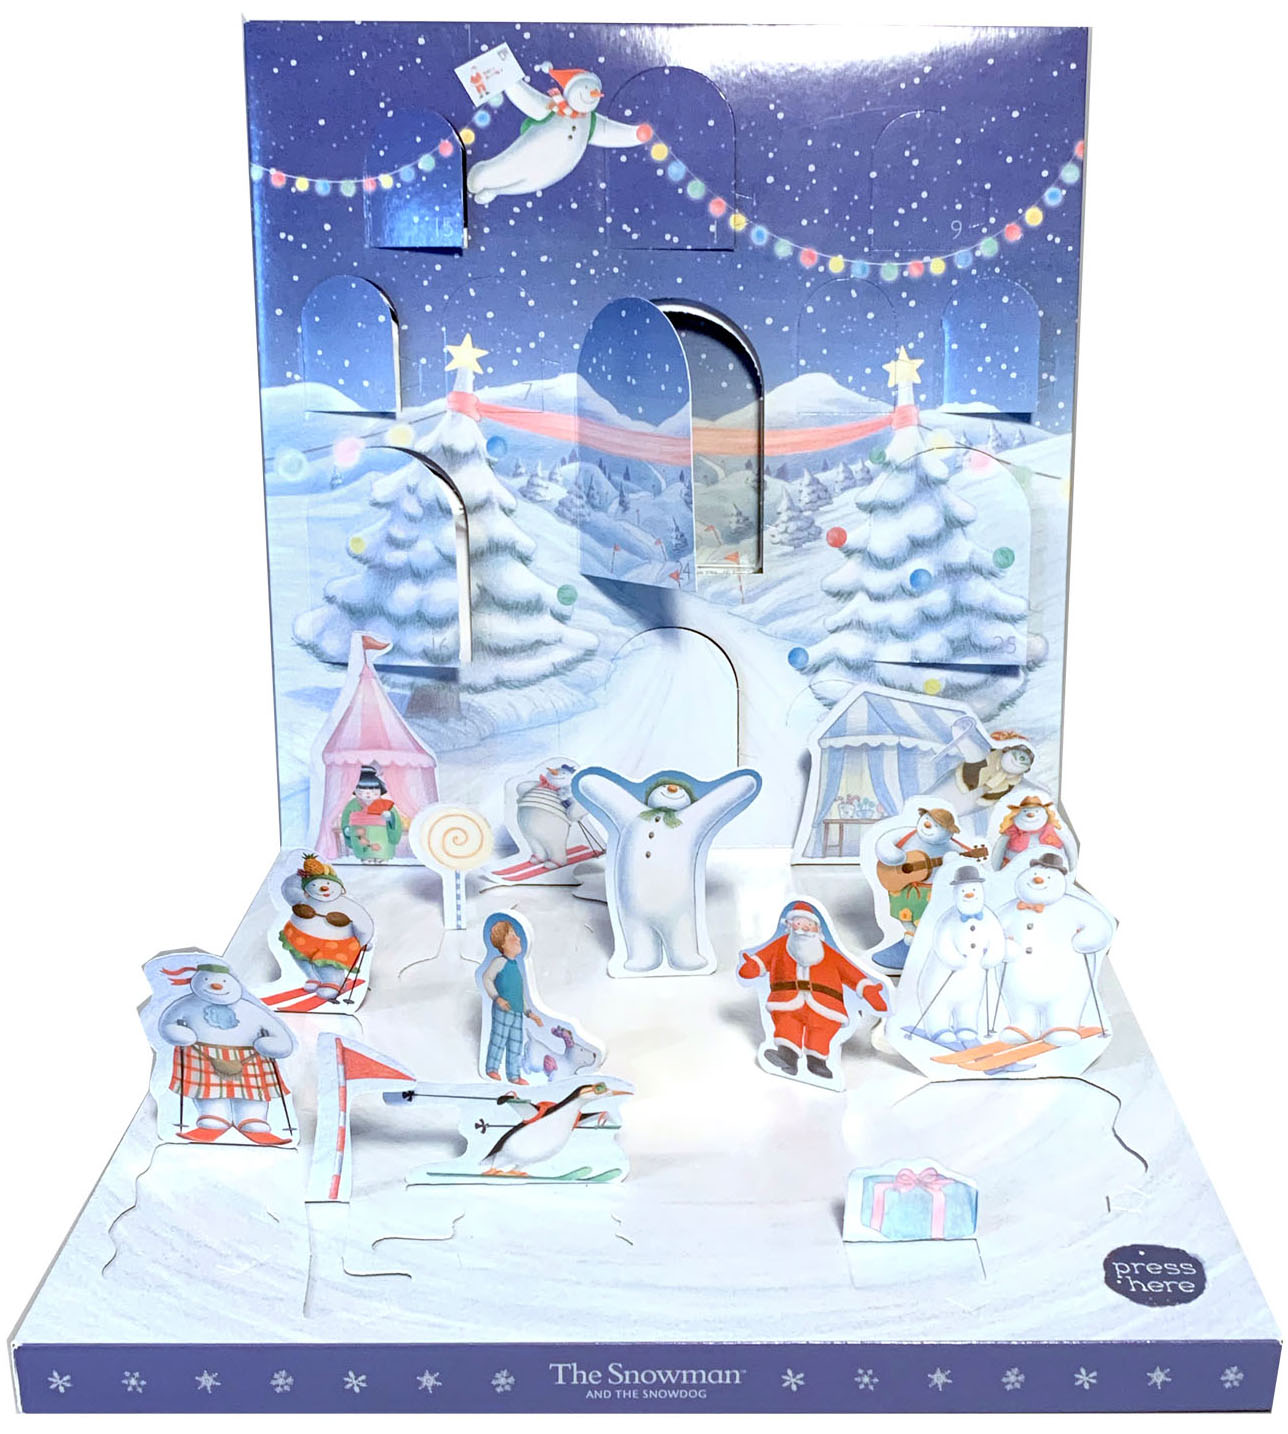 Above: The Snowman Musical Advent which Danilo developed in collaboration  with My Design Co is debuting in John Lewis as well as online.